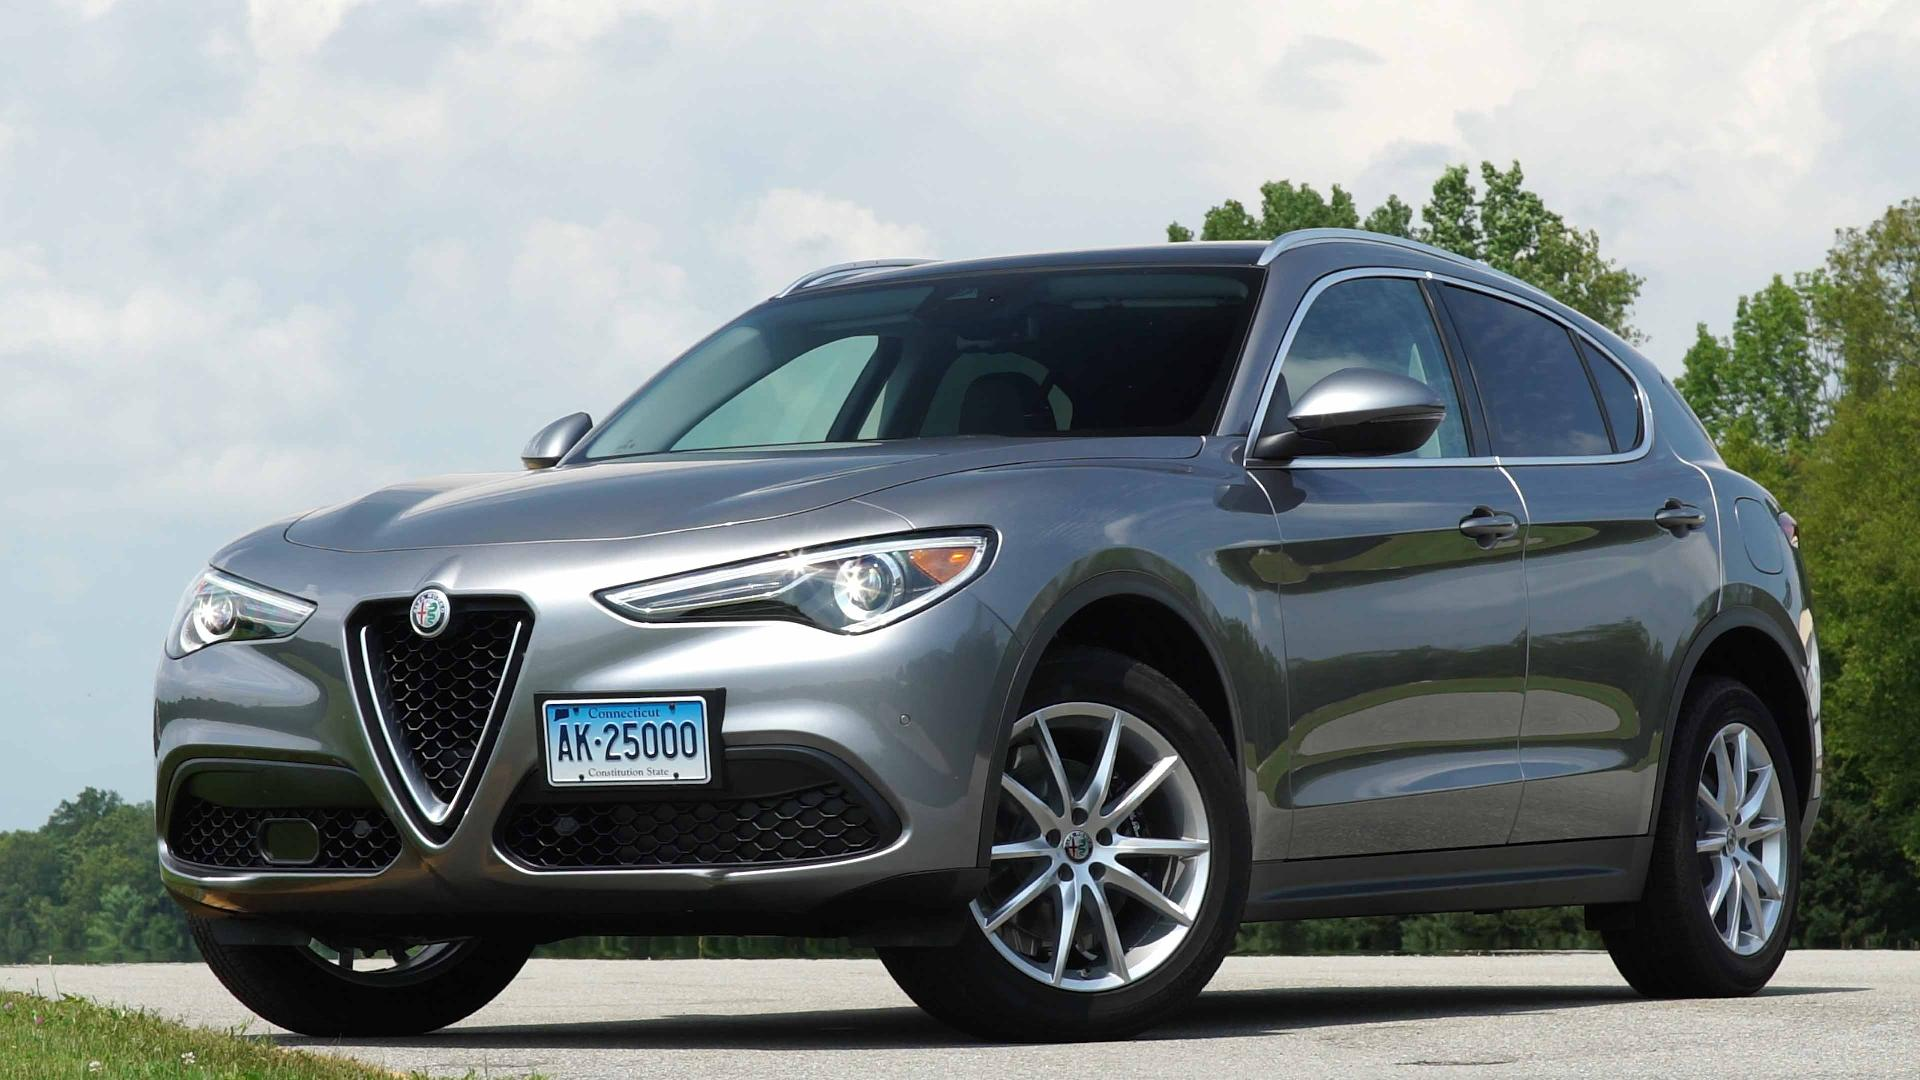 2018 Alfa Romeo Stelvio Is Agile but Annoying Consumer Reports